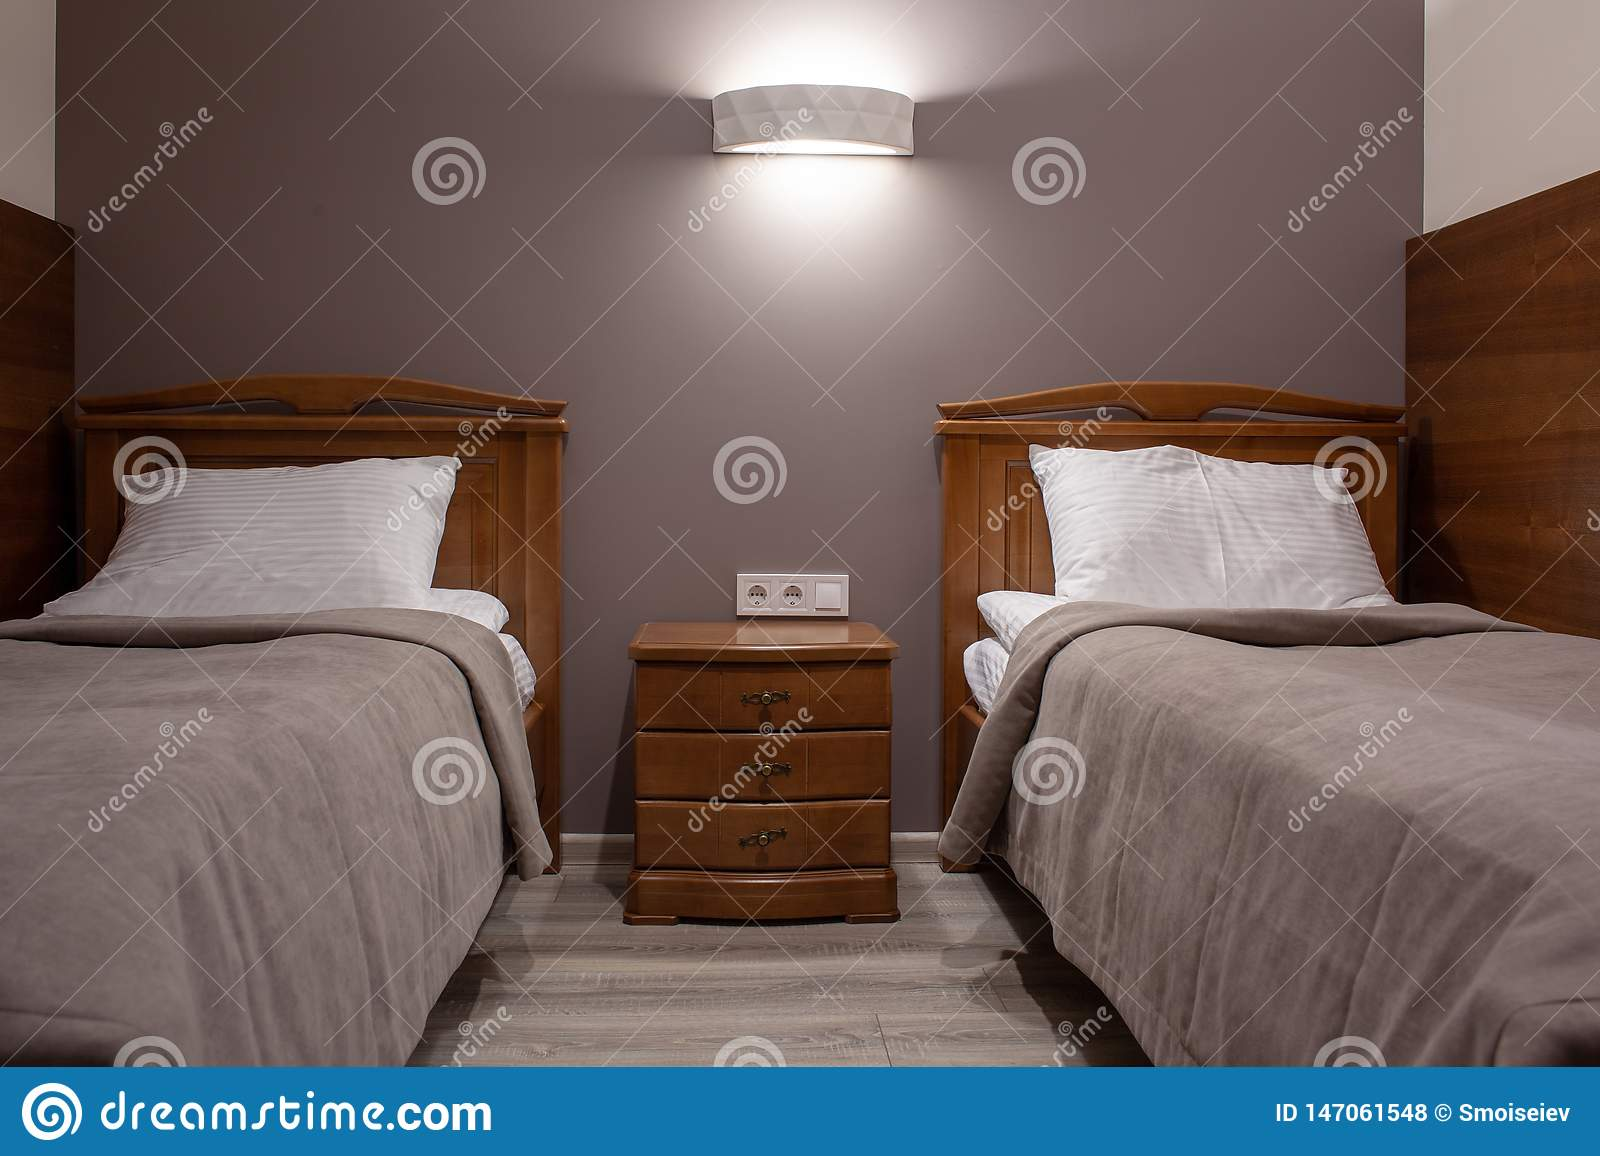 Cozy Hotel Room Stock Photo Image Of Furniture Modern 147061548